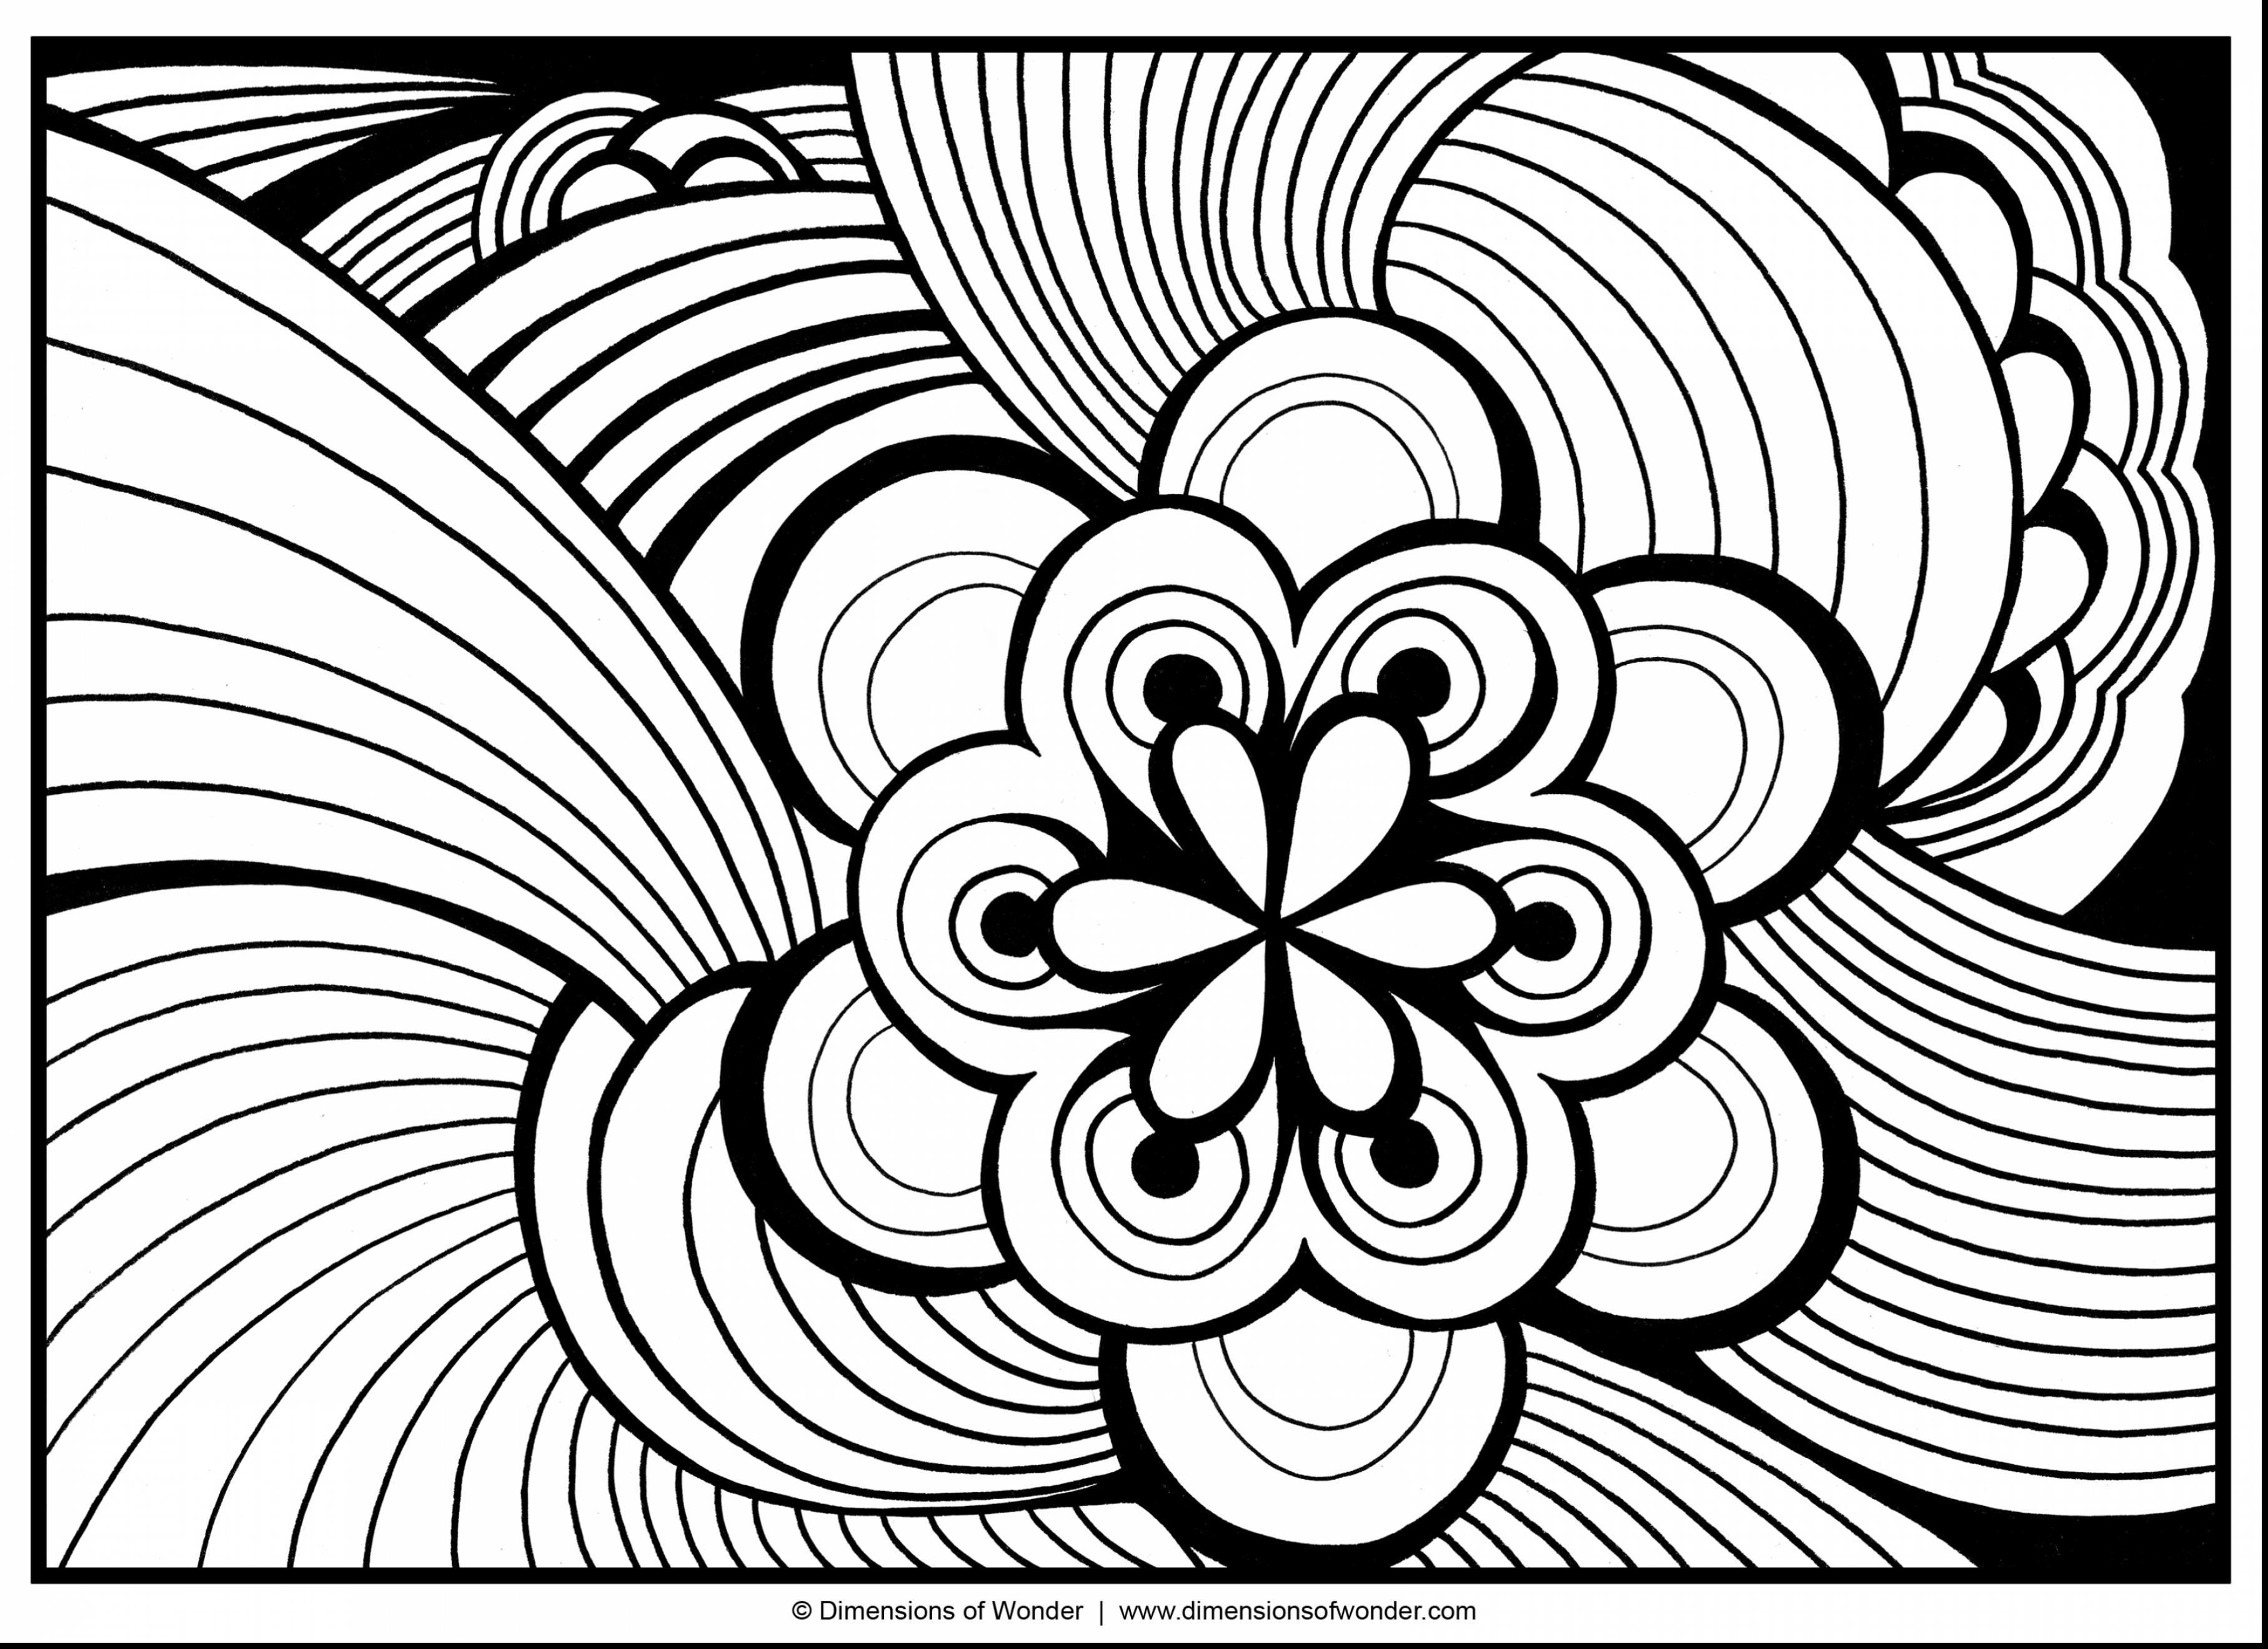 3630x2640 Free Online Mandala Coloring Pages For Adults Printable Godzilla